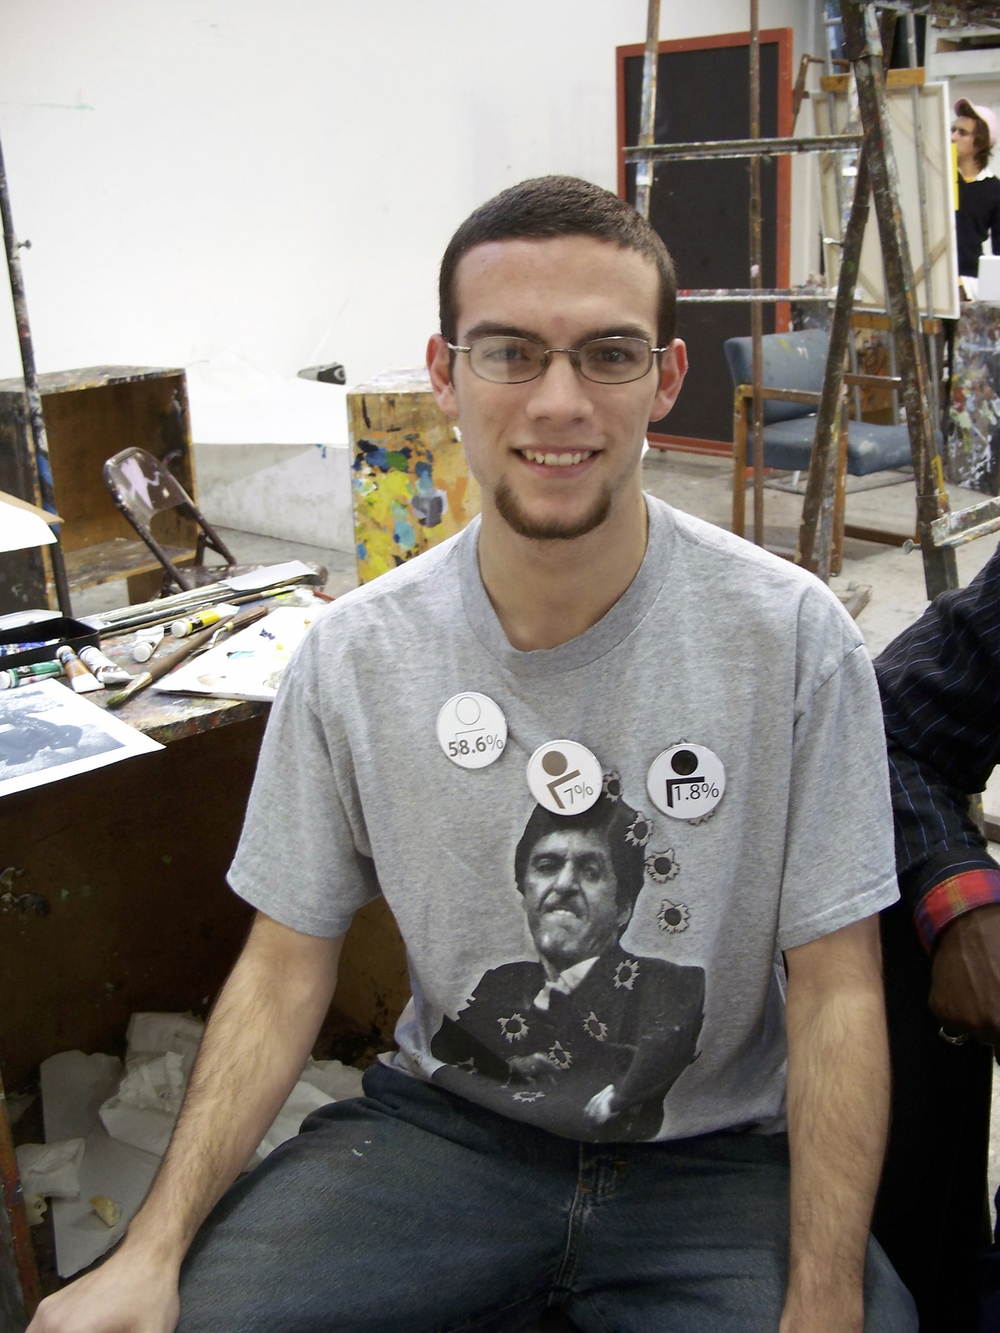 Undergraduate painting student wearing multiple buttons